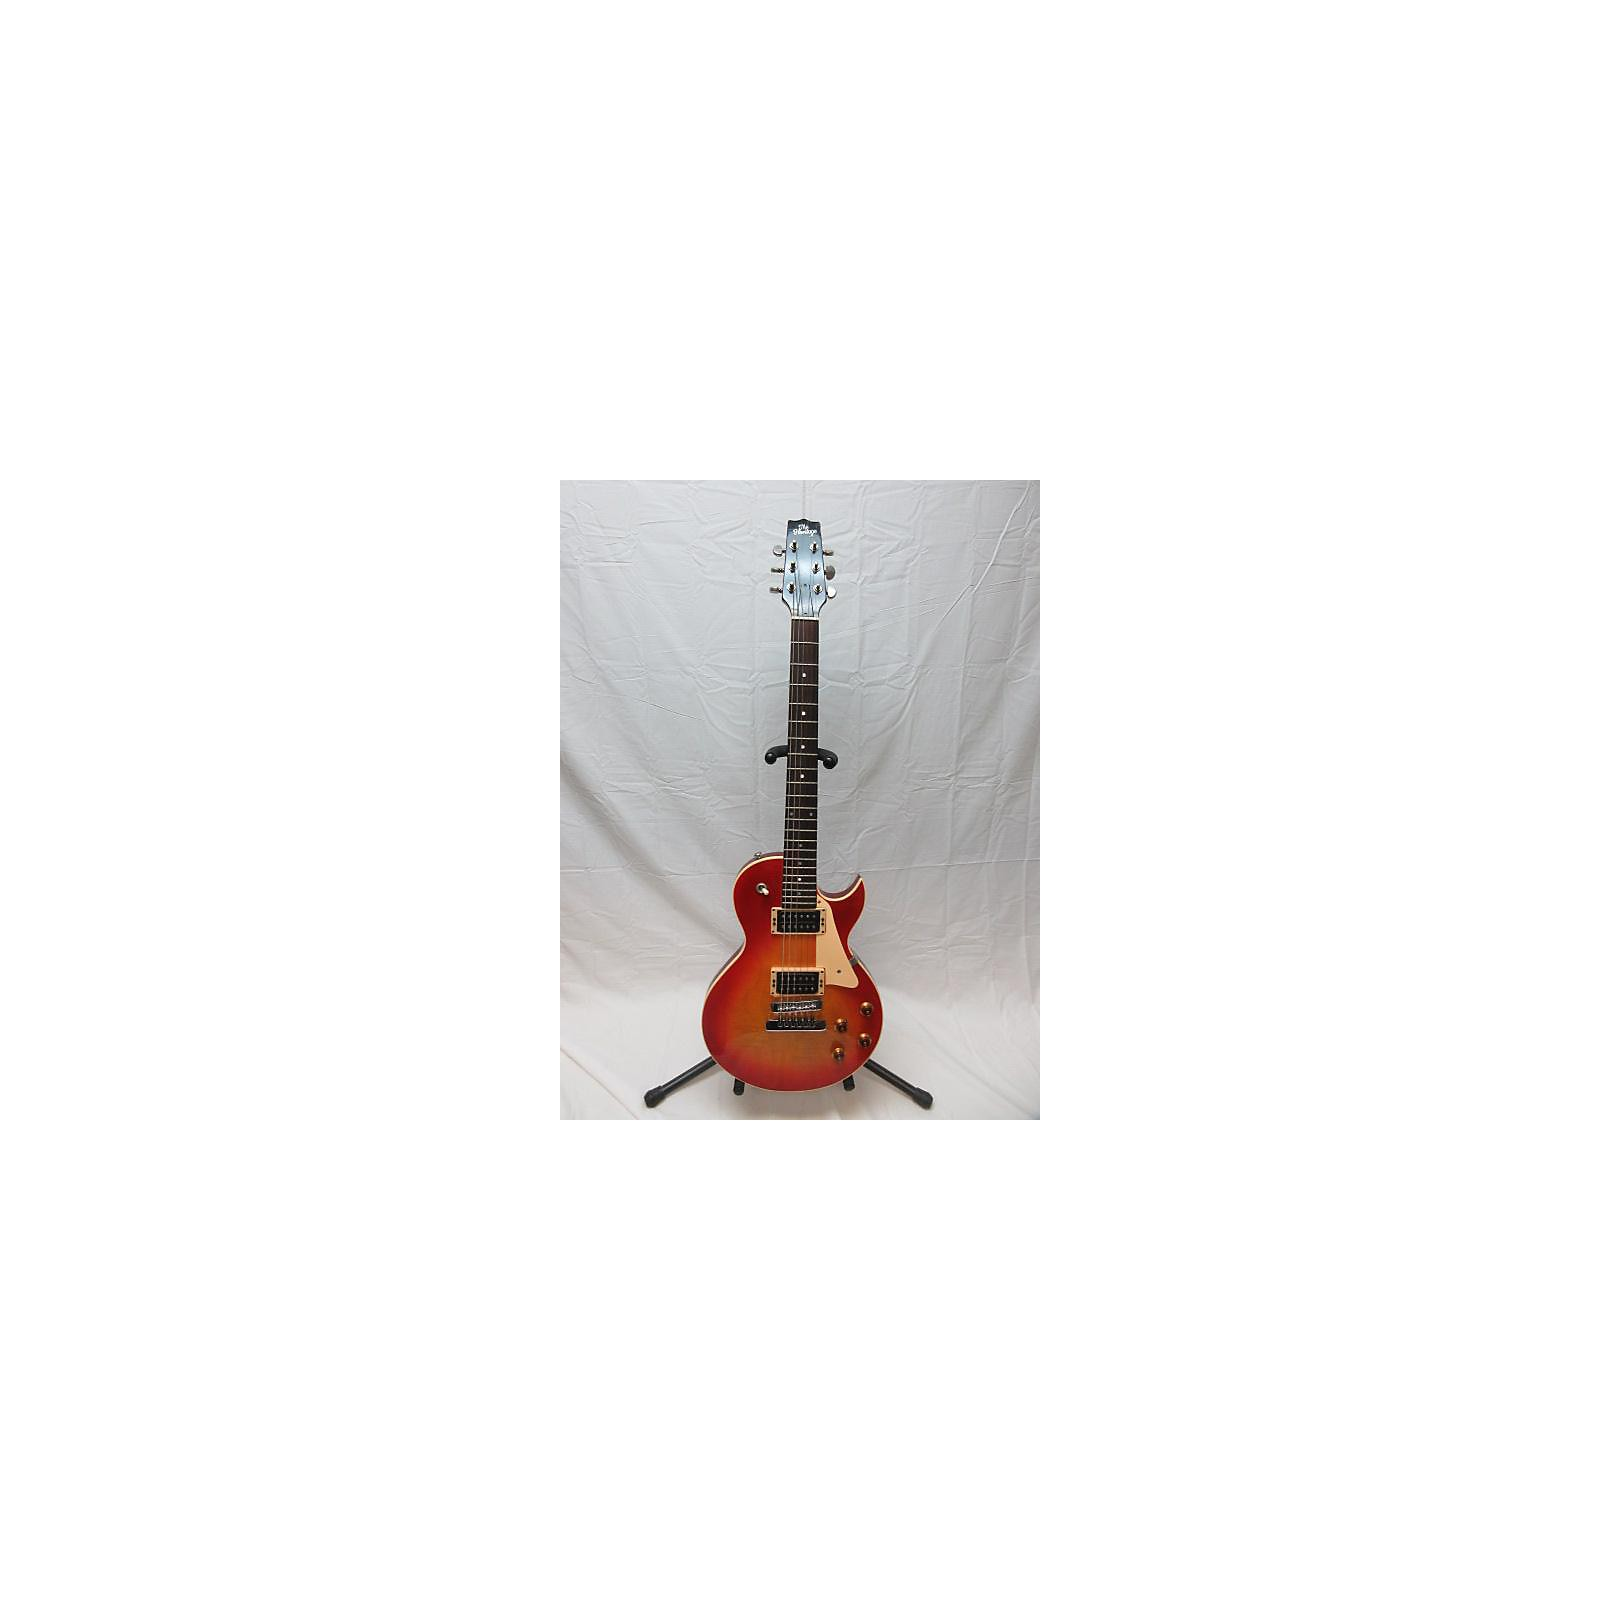 The Heritage 1997 H-150 Solid Body Electric Guitar